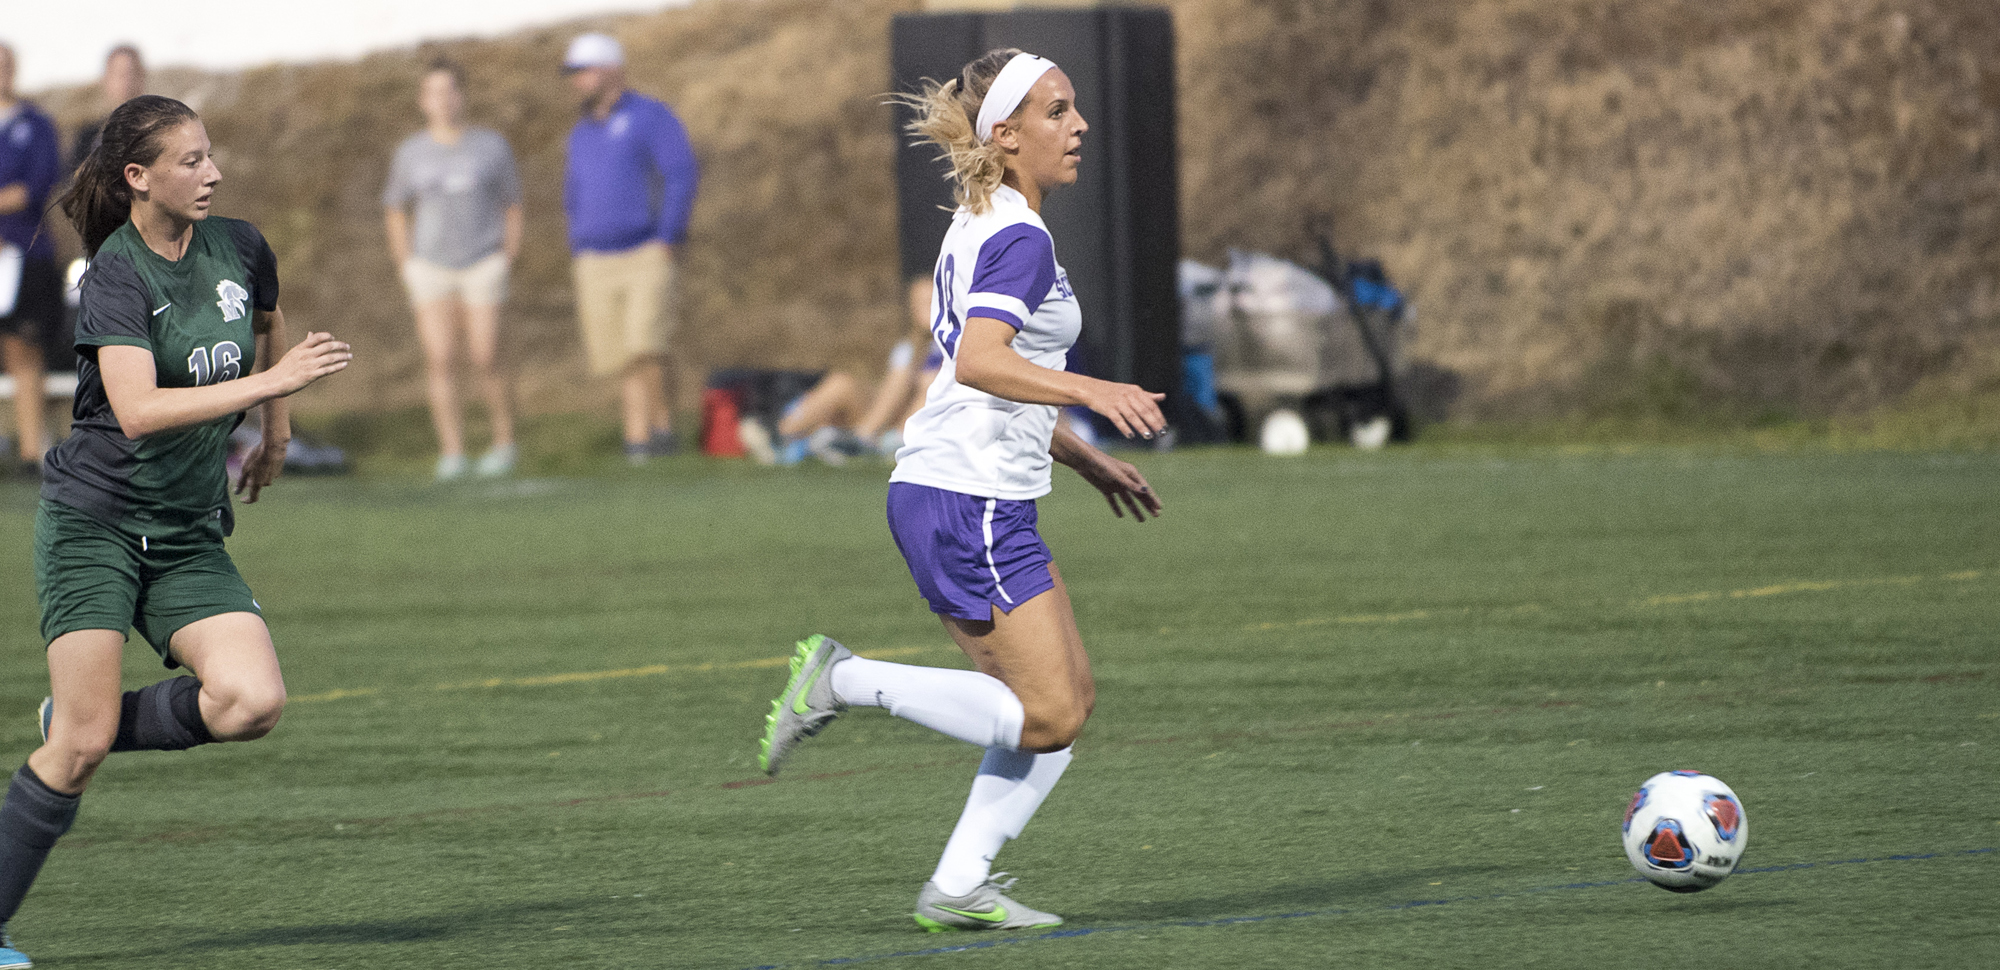 Senior Jamie Hreniuk scored four goals over the weekend as the Royals opened the season with a pair of wins.